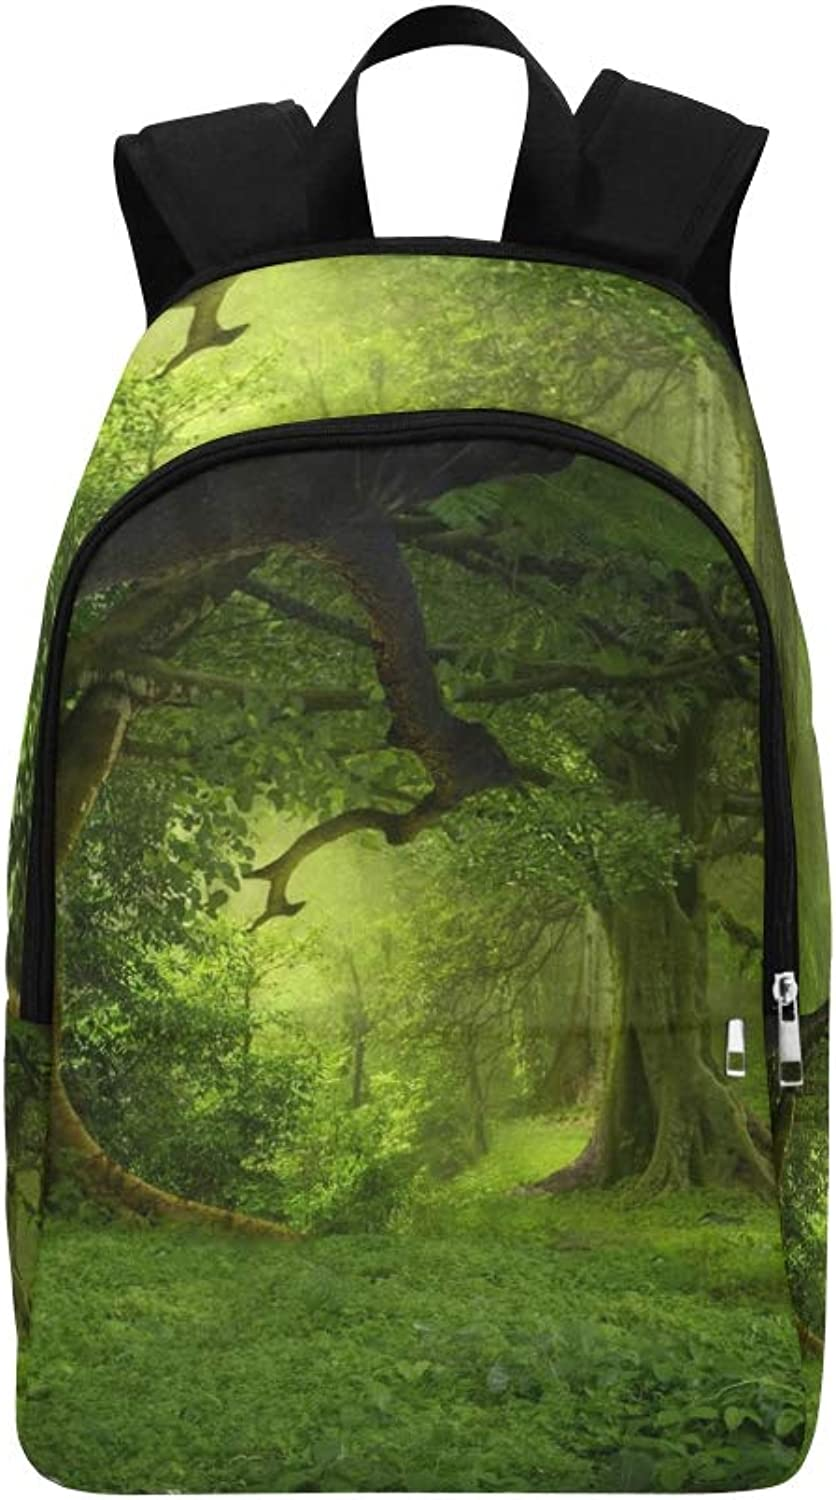 Deep Tropical Jungles Southeast Asia August Casual Daypack Travel Bag College School Backpack for Mens and Women